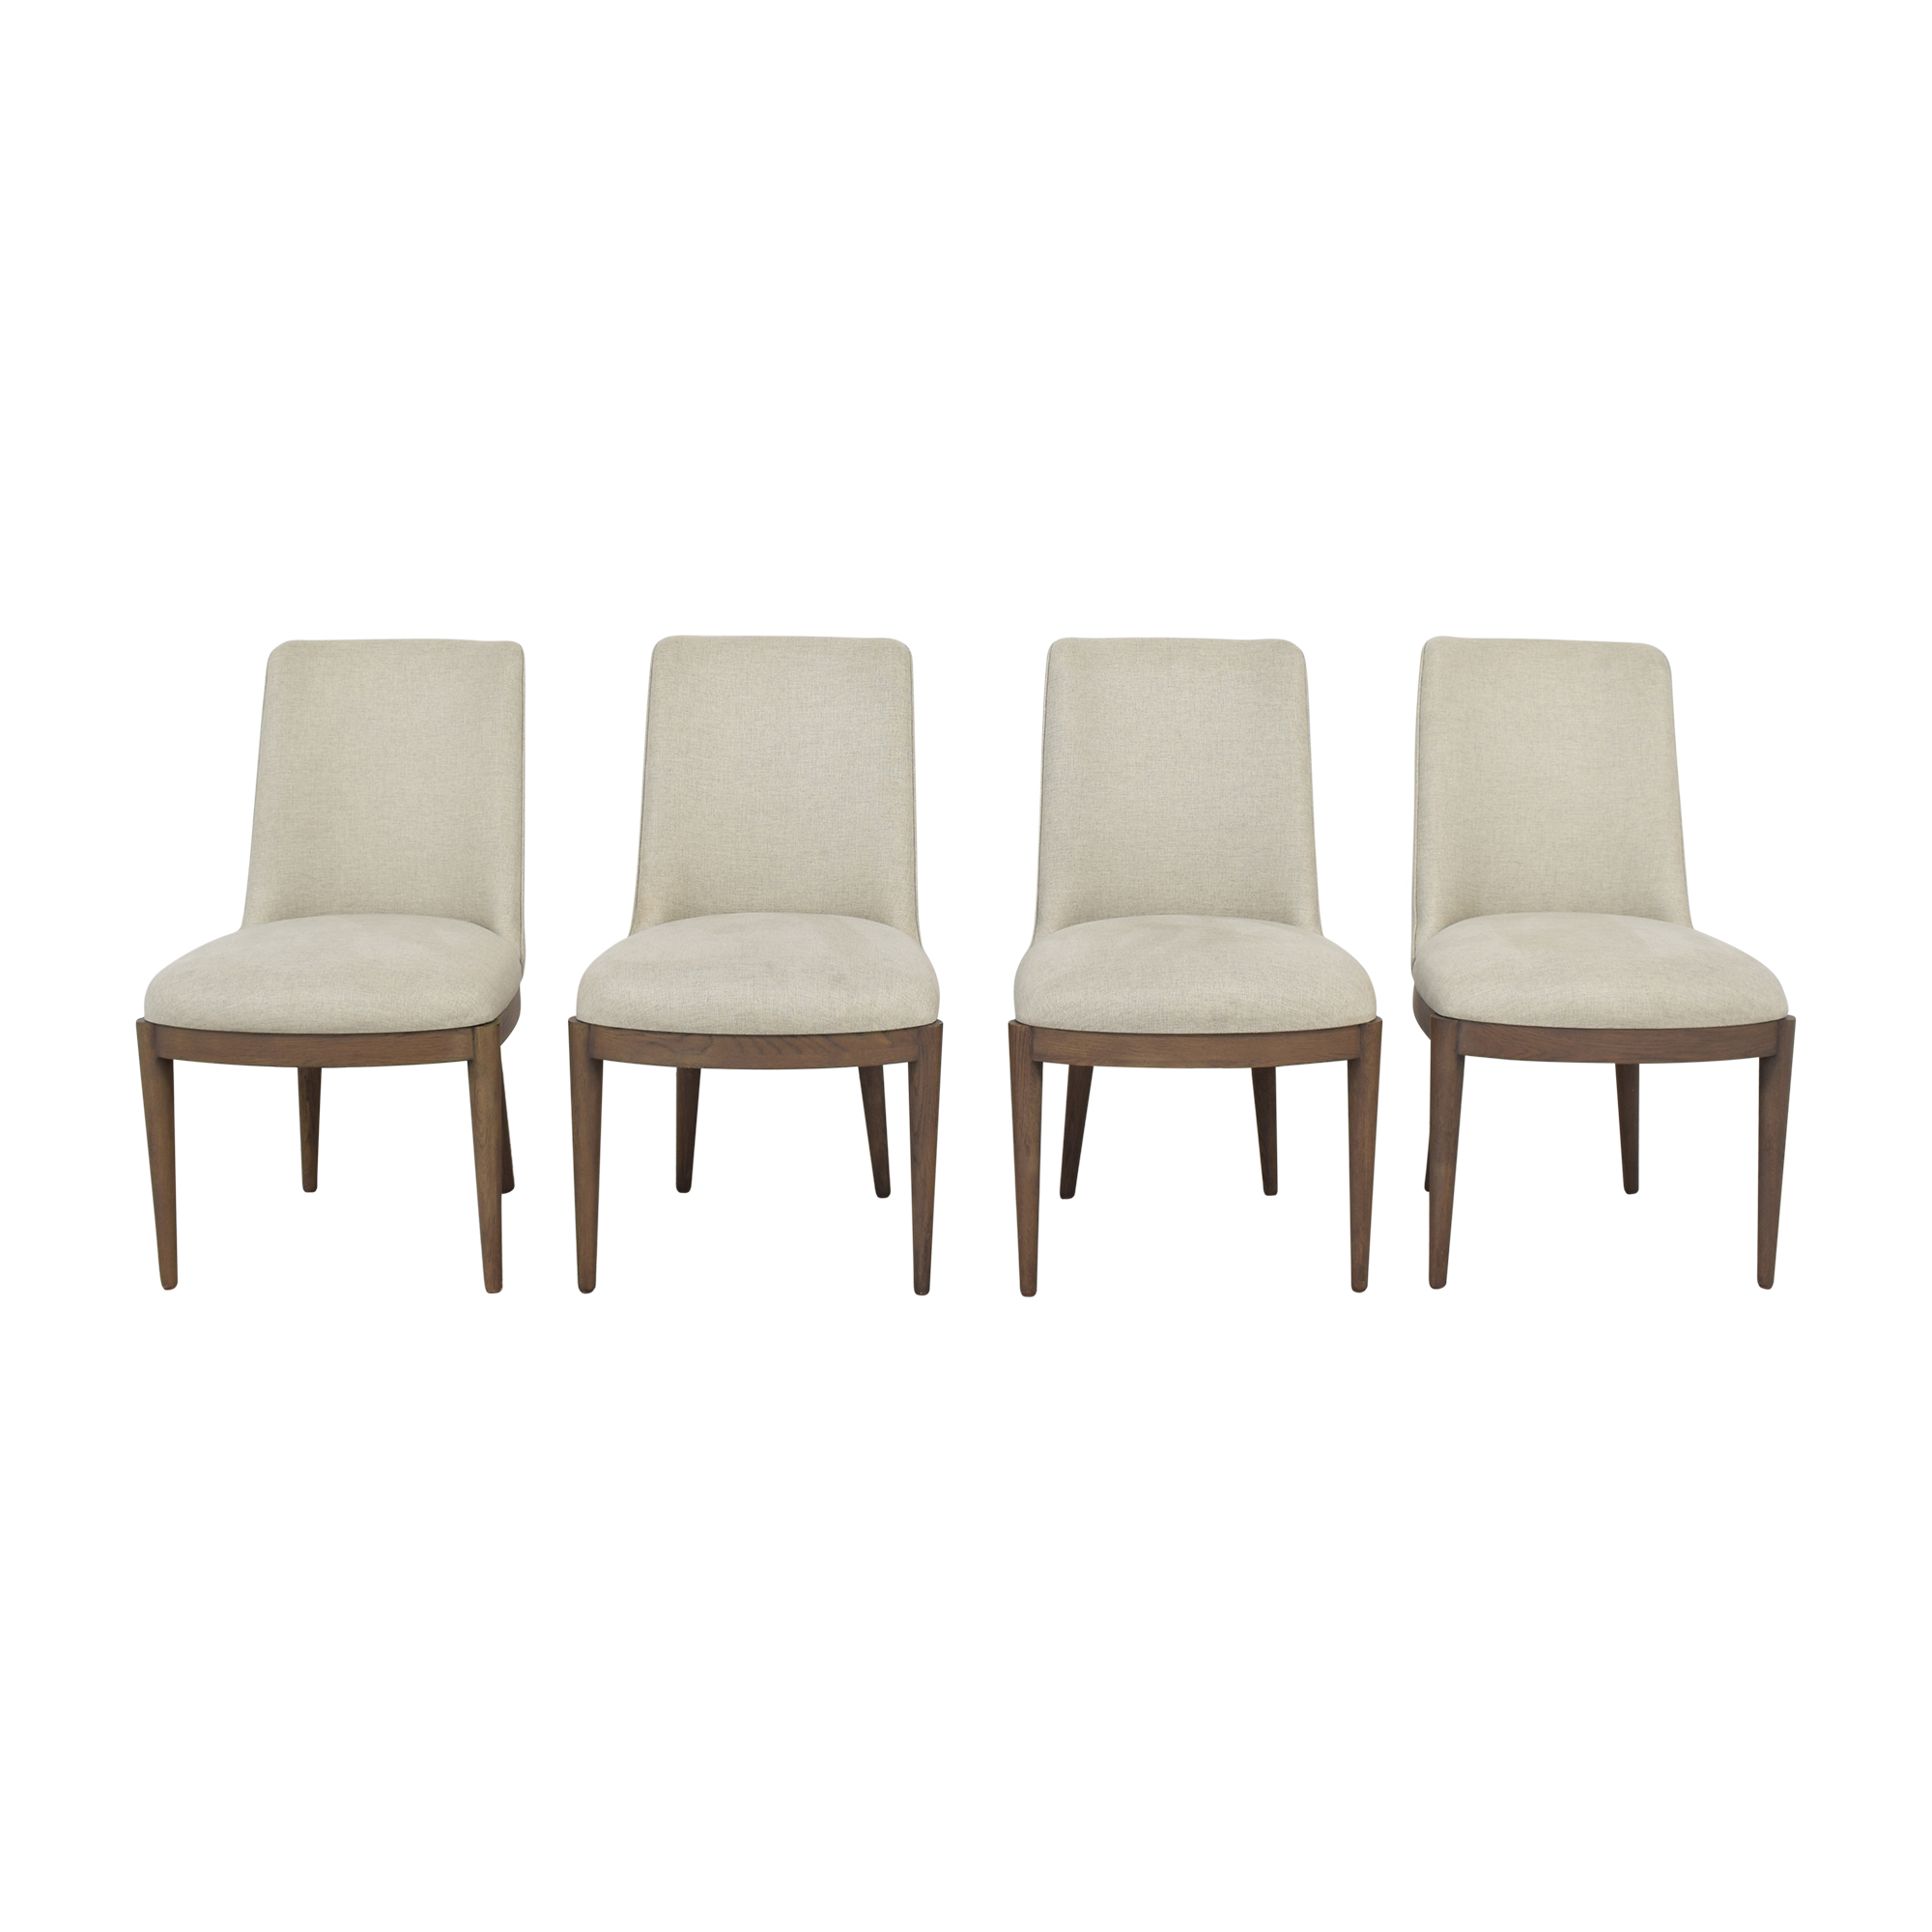 Caracole Caracole Metro Dining Chairs price